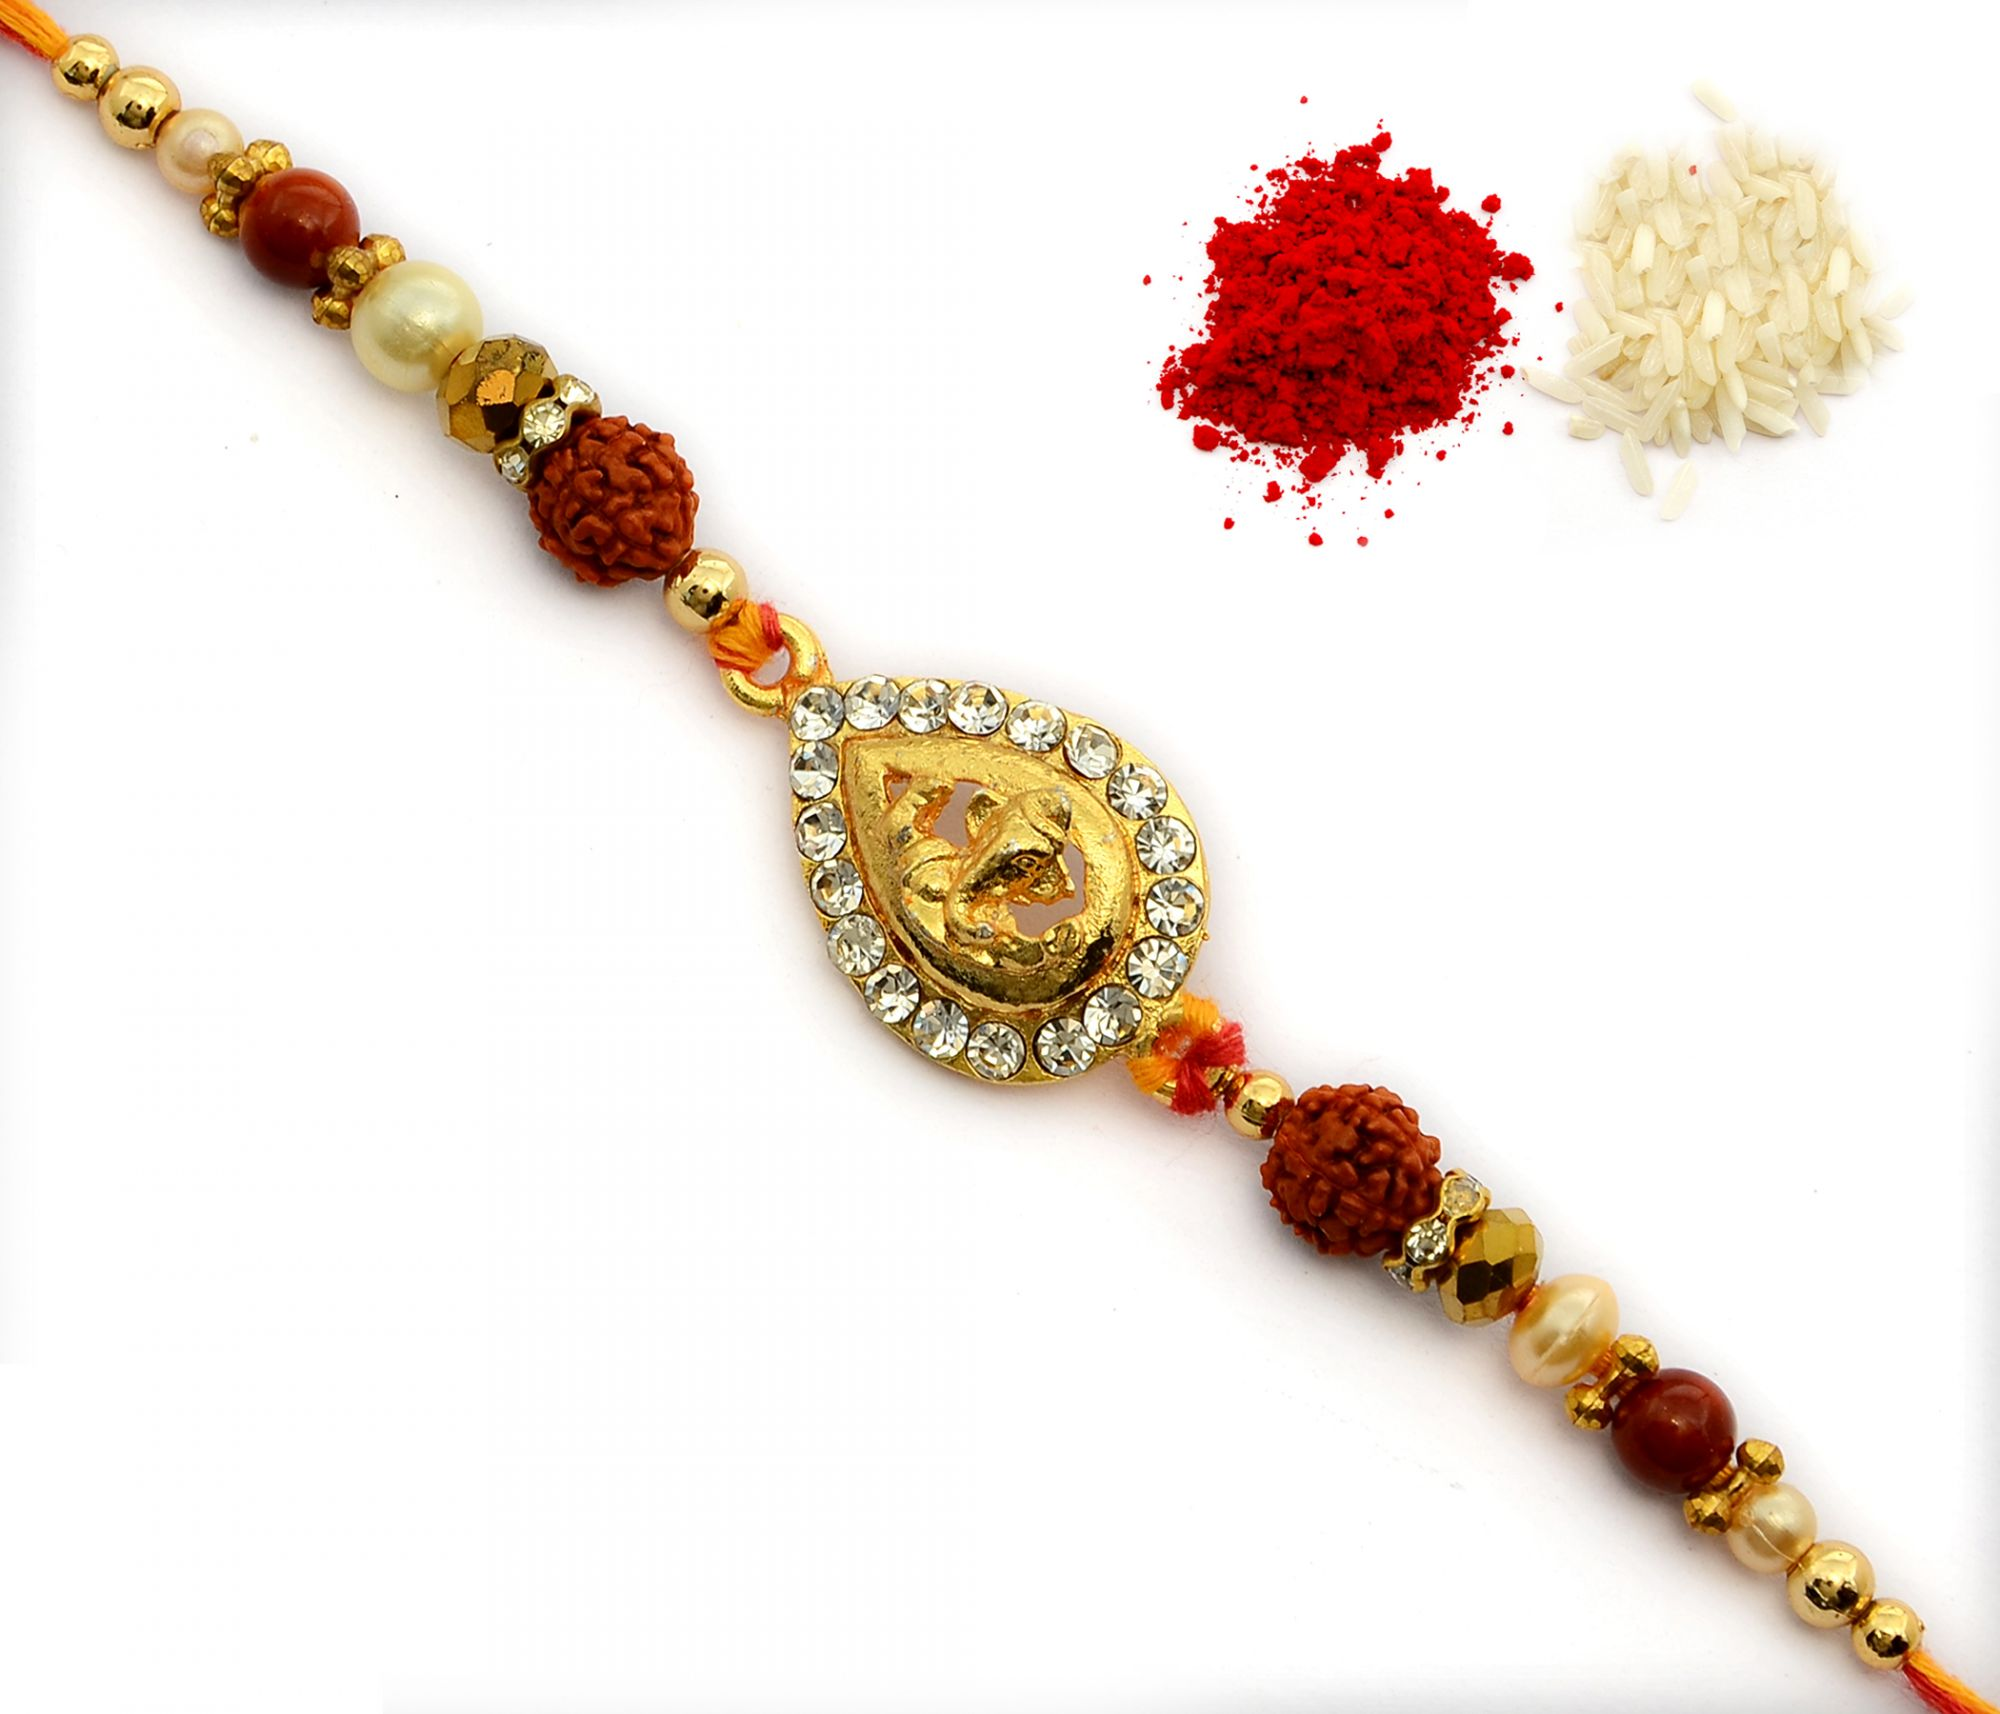 GOLD PLATED GANESH JI METAL HANDCRAFTED BEADS RAKHI